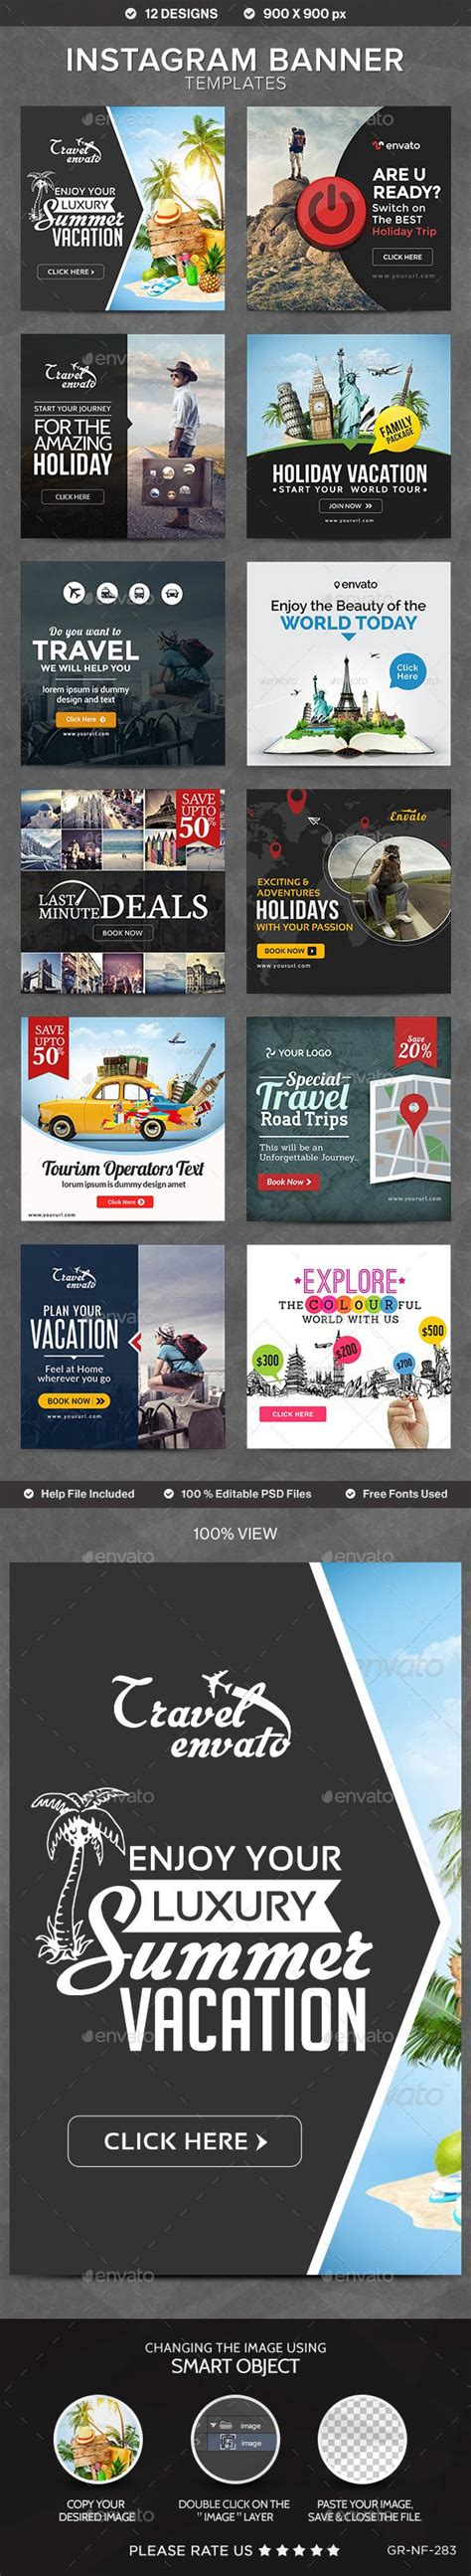 100 Best Images About Instagram Cover On Pinterest Instagram Ad Template Psd